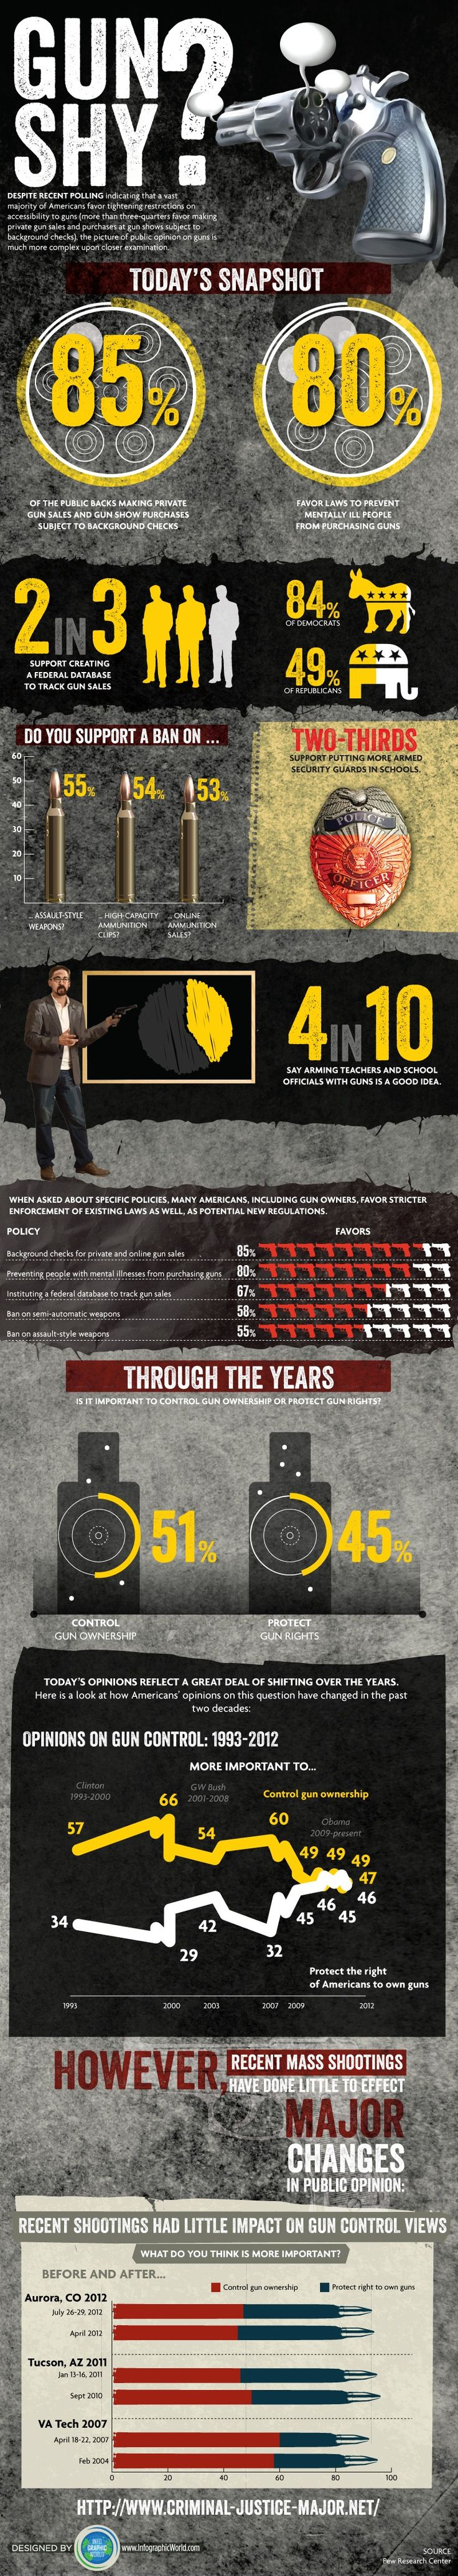 """Gun Shy? A Look at Public Opinion on Gun Ownership"""" Image compliments of Criminal Justice Major Guidethank you!"""